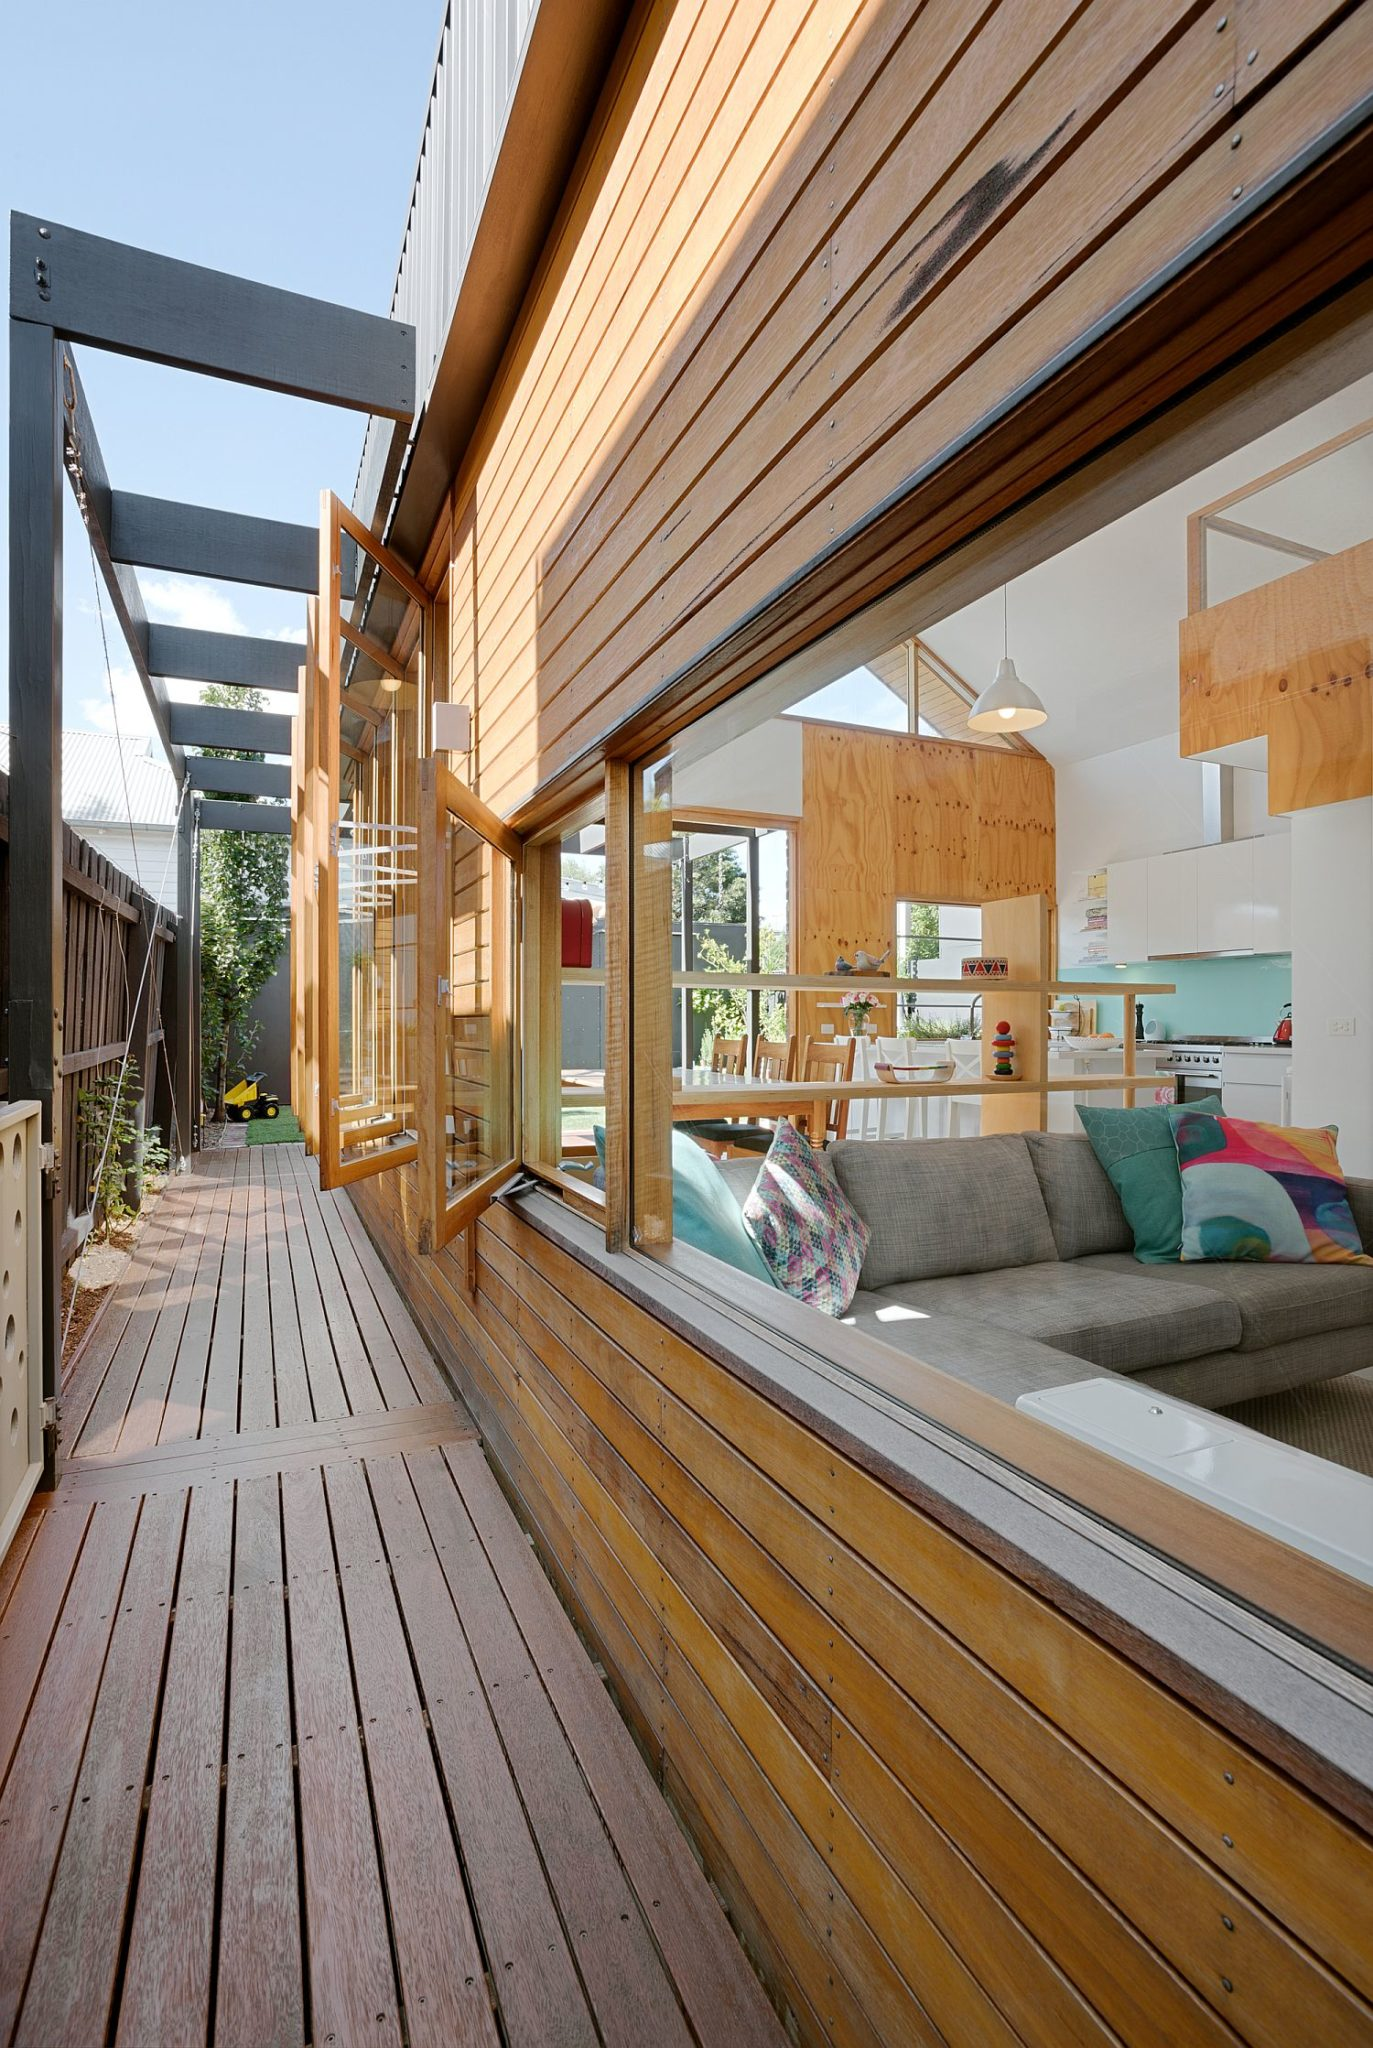 Series of windows and a wooden exterior define the exterior of the Aussie home